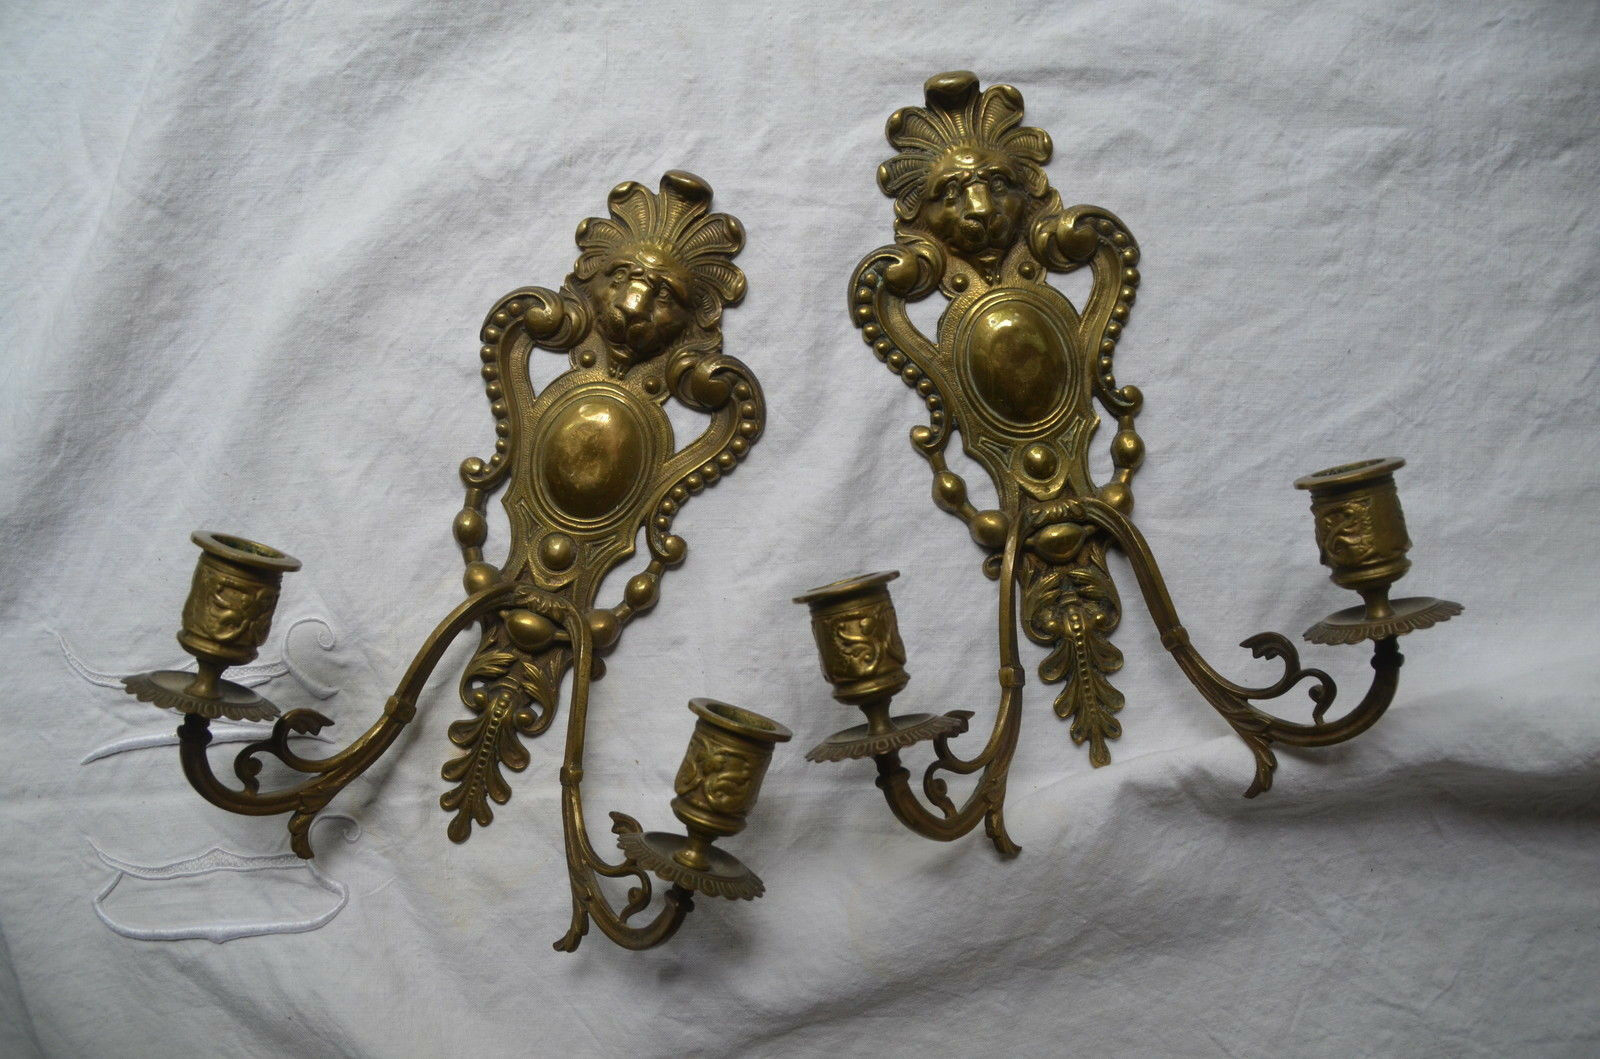 Pair antique French Louis XVI style 19th century solid bronze wall sconces